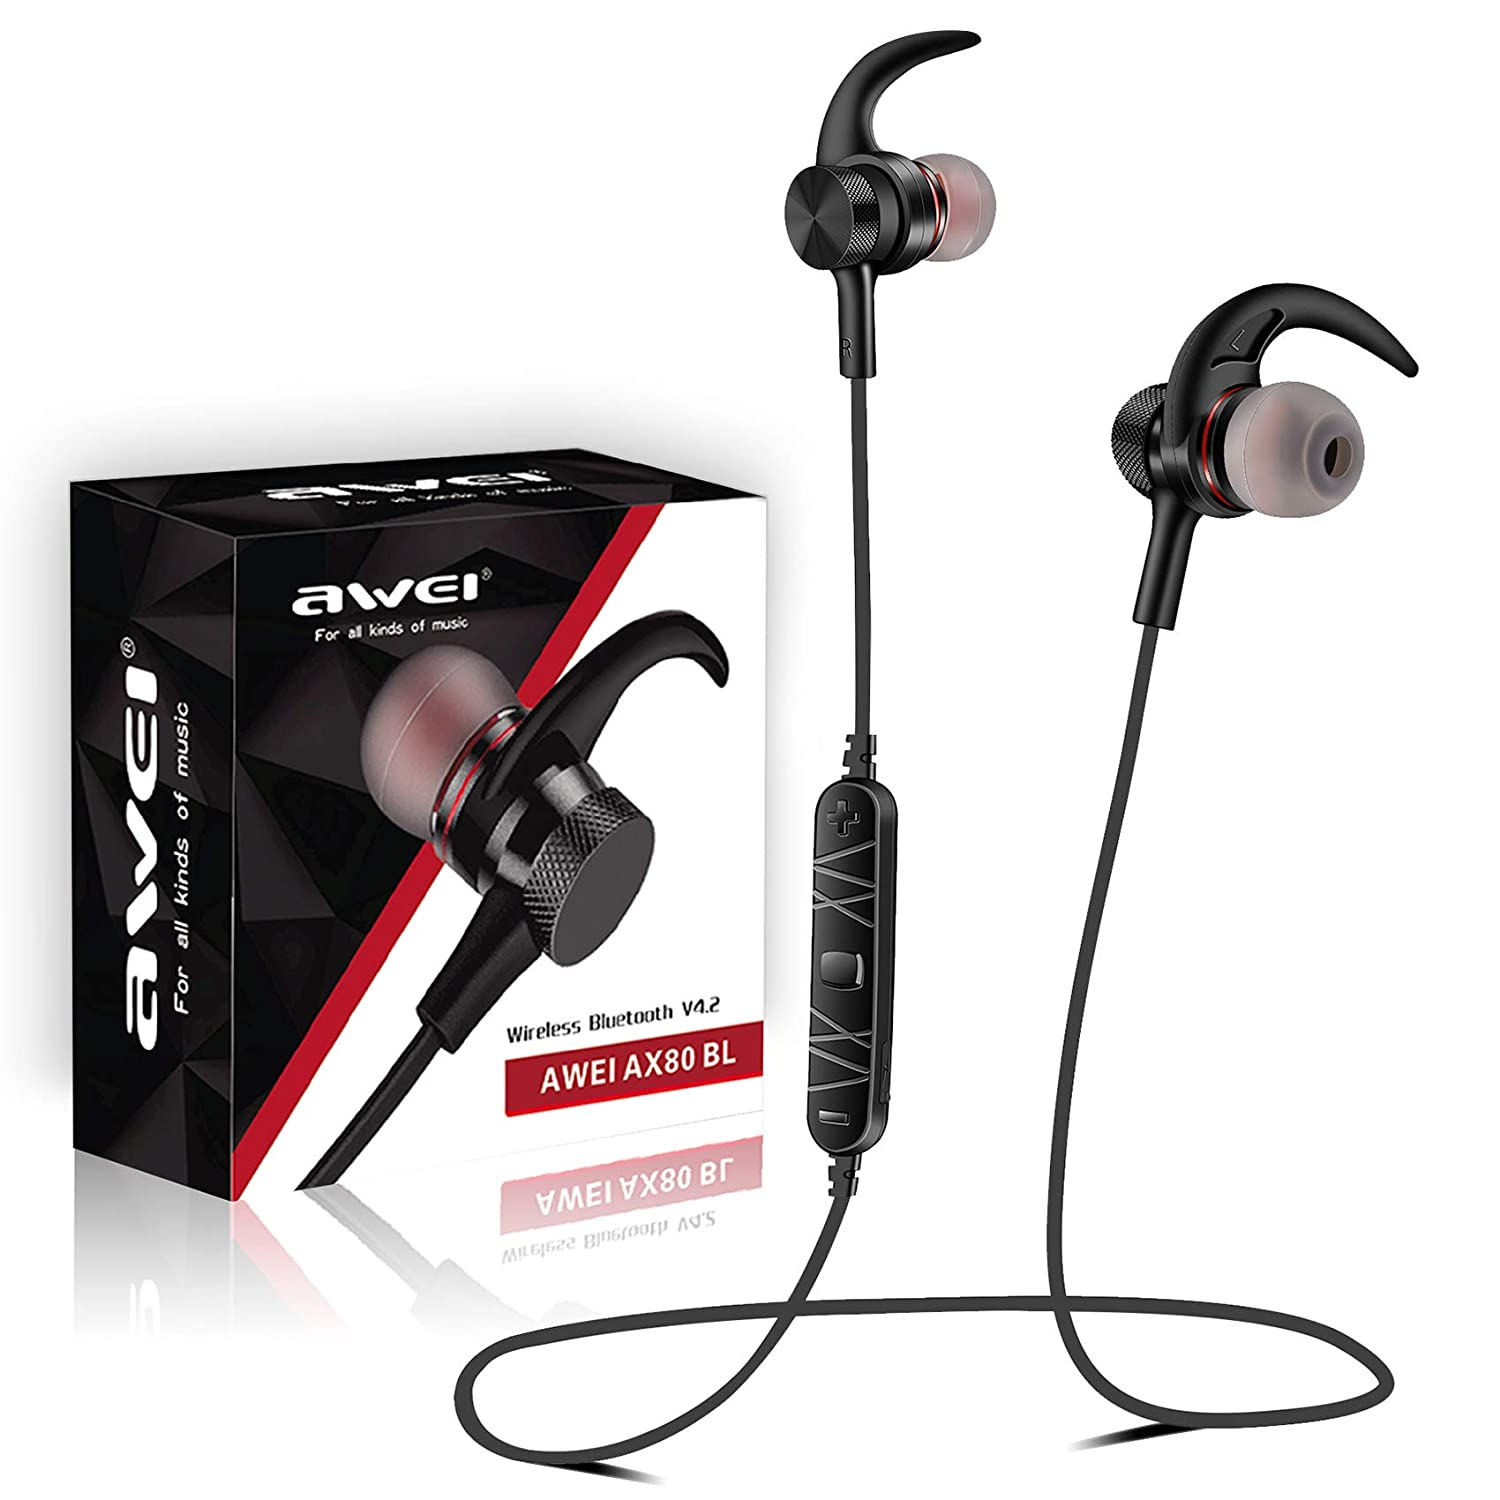 acfc8bb6d77 Bluetooth Headphones, AWEI V4.2 in-Ear Earphones, IPX5 Sweatproof Wireless  Earbuds with Microphone Isolation of Noise, Richer Bass HiFi 8-Hrs Battery,  ...